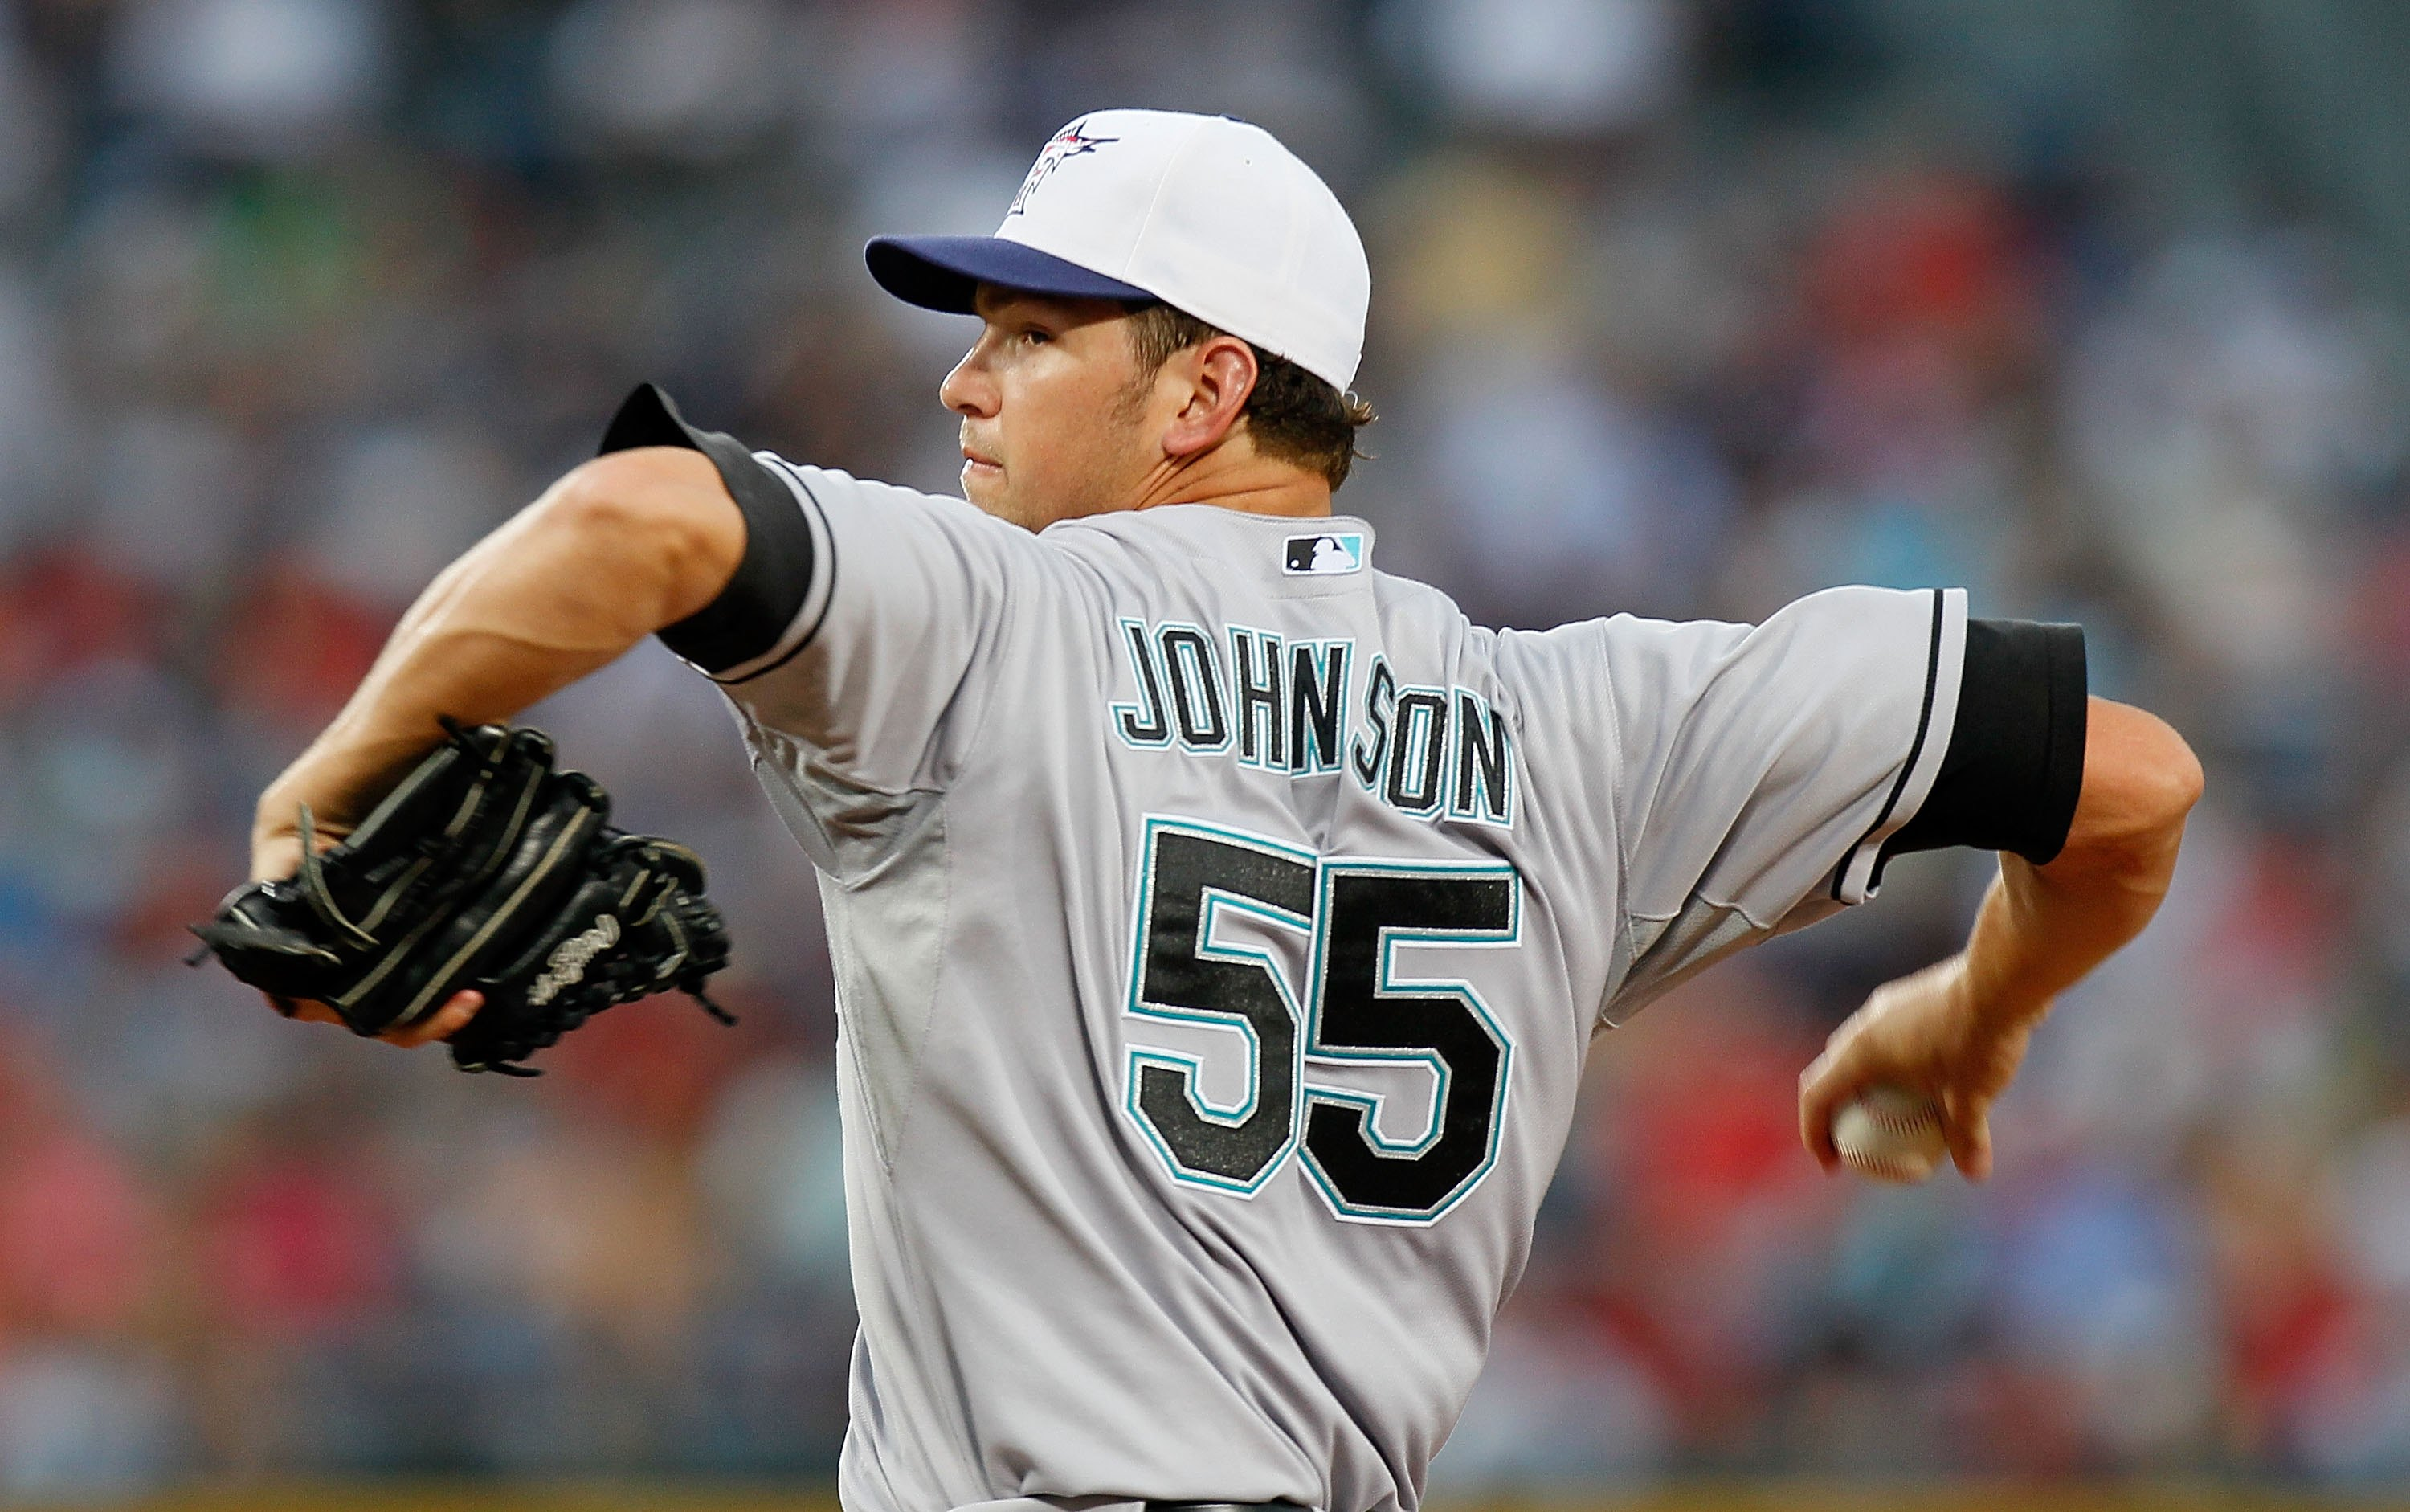 ATLANTA - JULY 02:  Pitcher Josh Johnson #55 of the Florida Marlins against the Atlanta Braves at Turner Field on July 2, 2010 in Atlanta, Georgia.  (Photo by Kevin C. Cox/Getty Images)